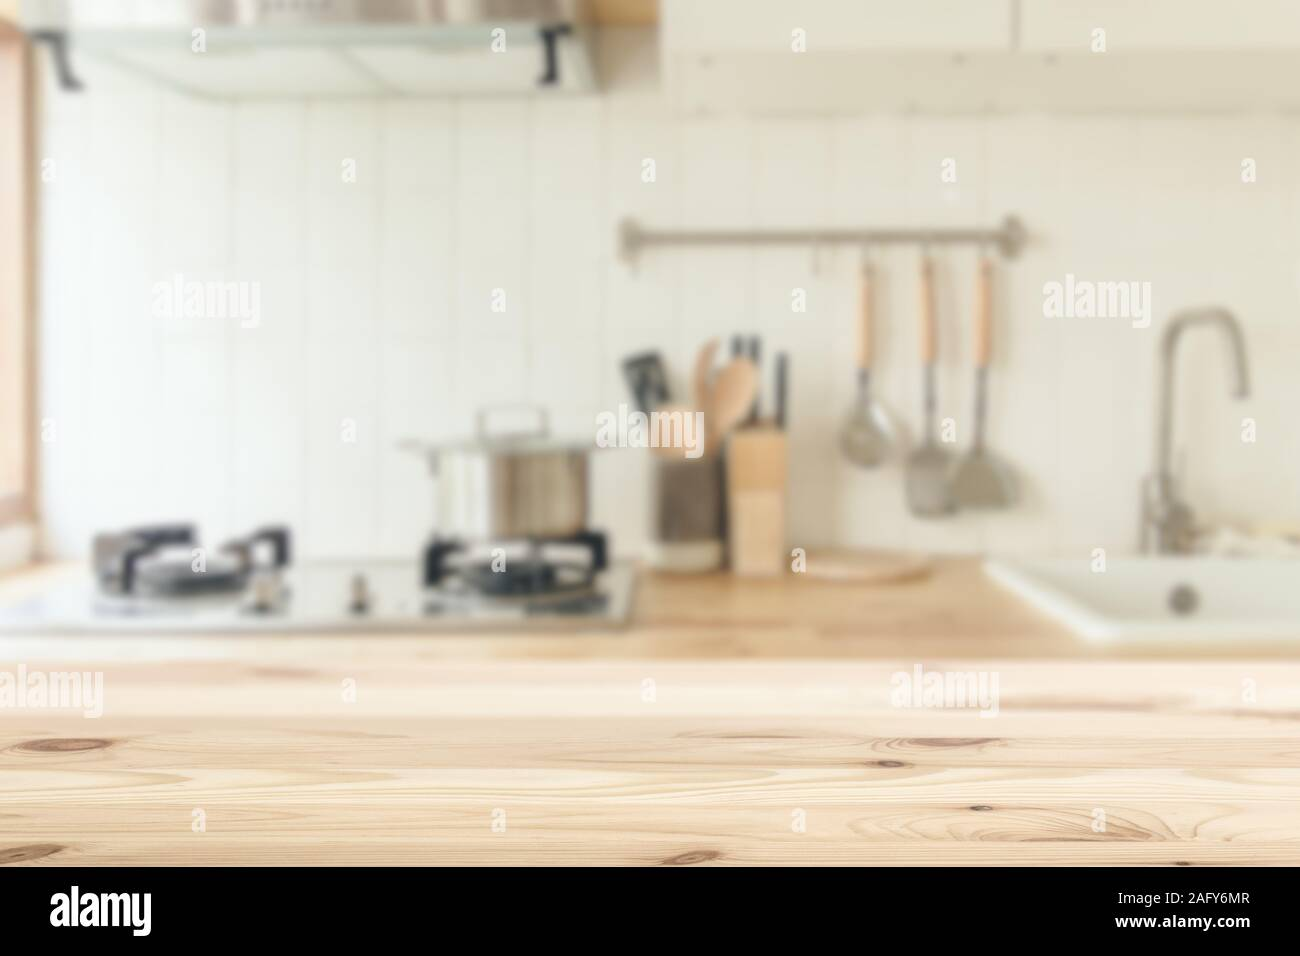 Cooking Banner Kitchenware High Resolution Stock Photography And Images Alamy